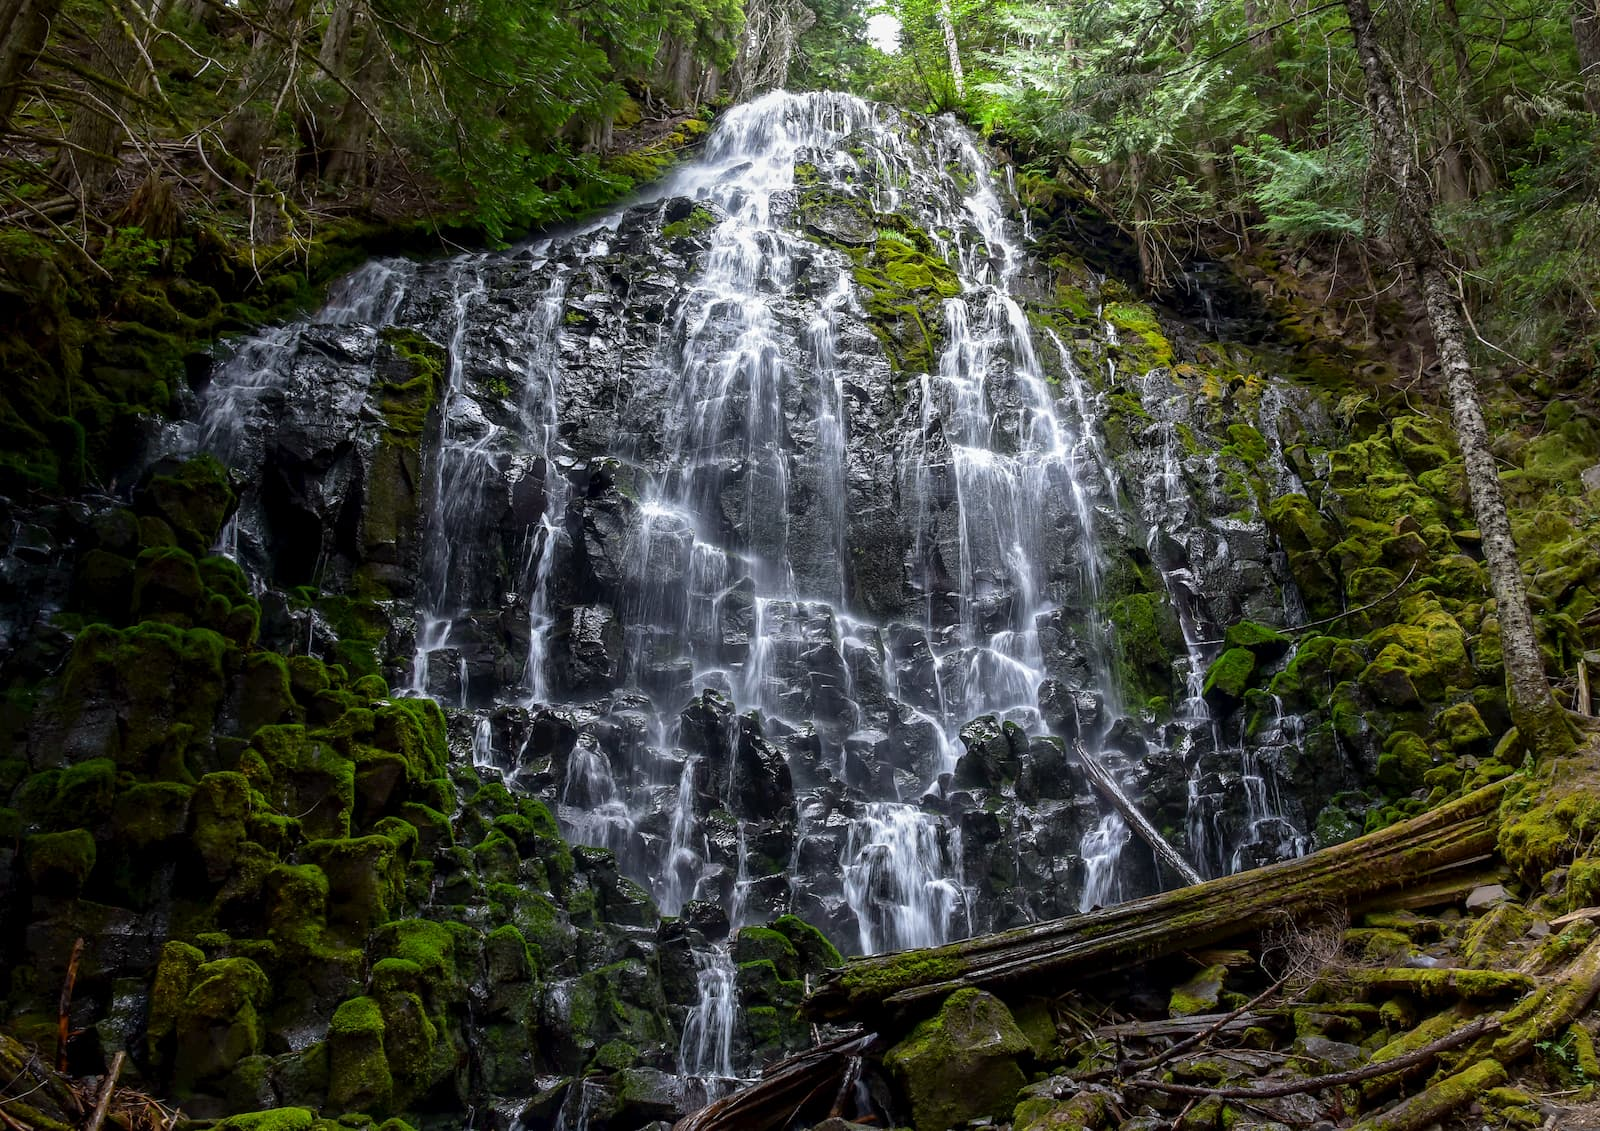 Water cascading down moss covered rocks in a forest above a bridge.